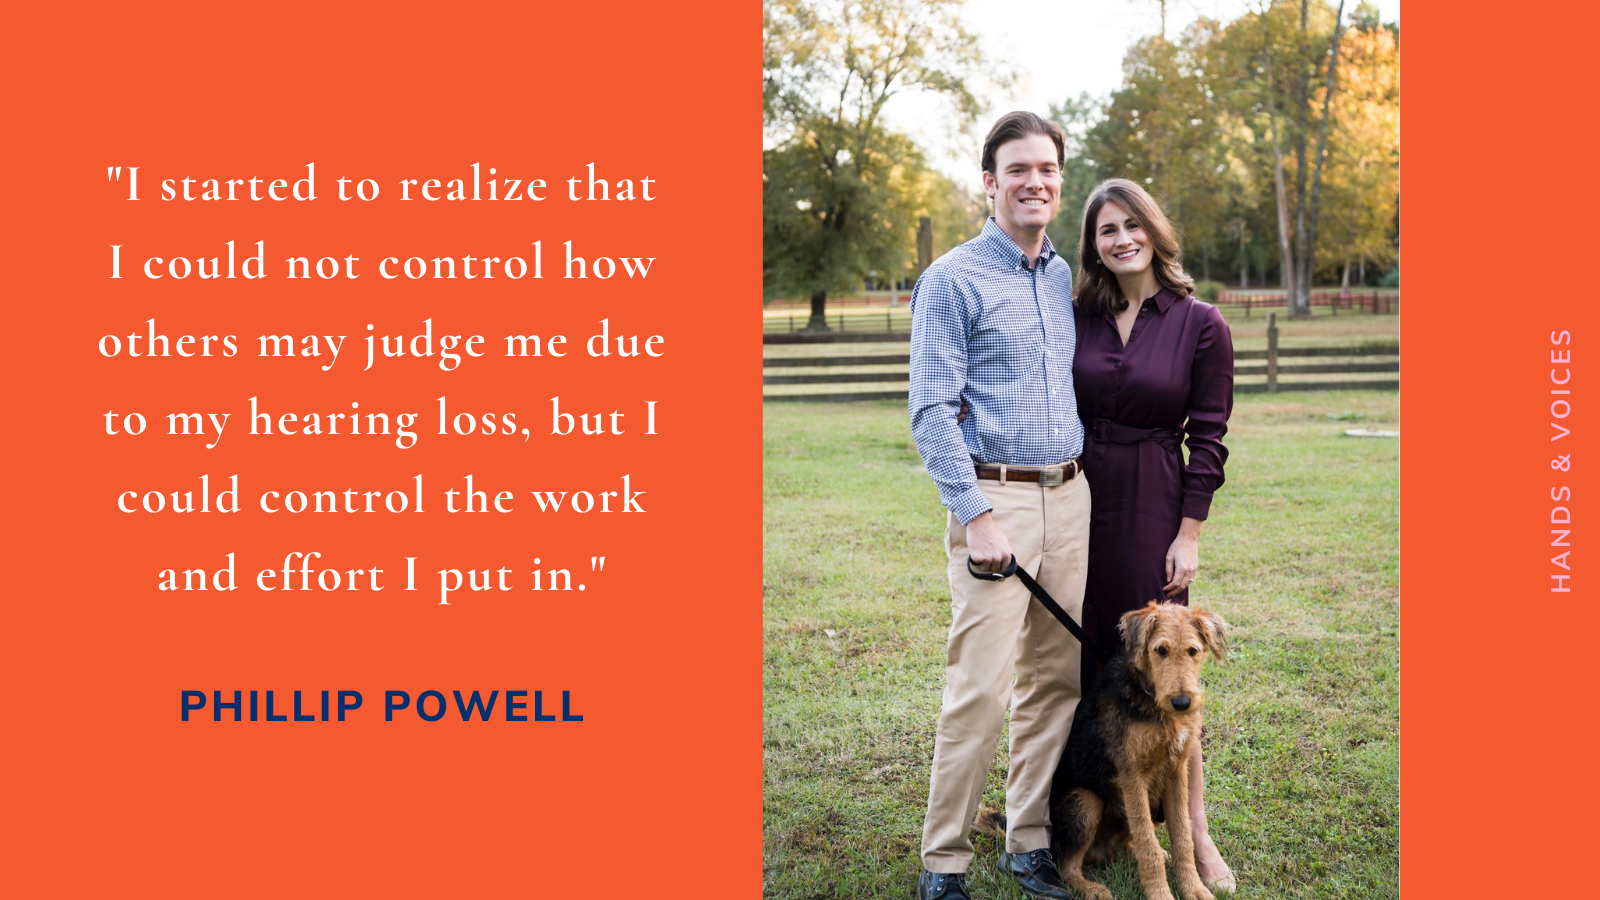 Phillip Powell stands outside with wife and dog